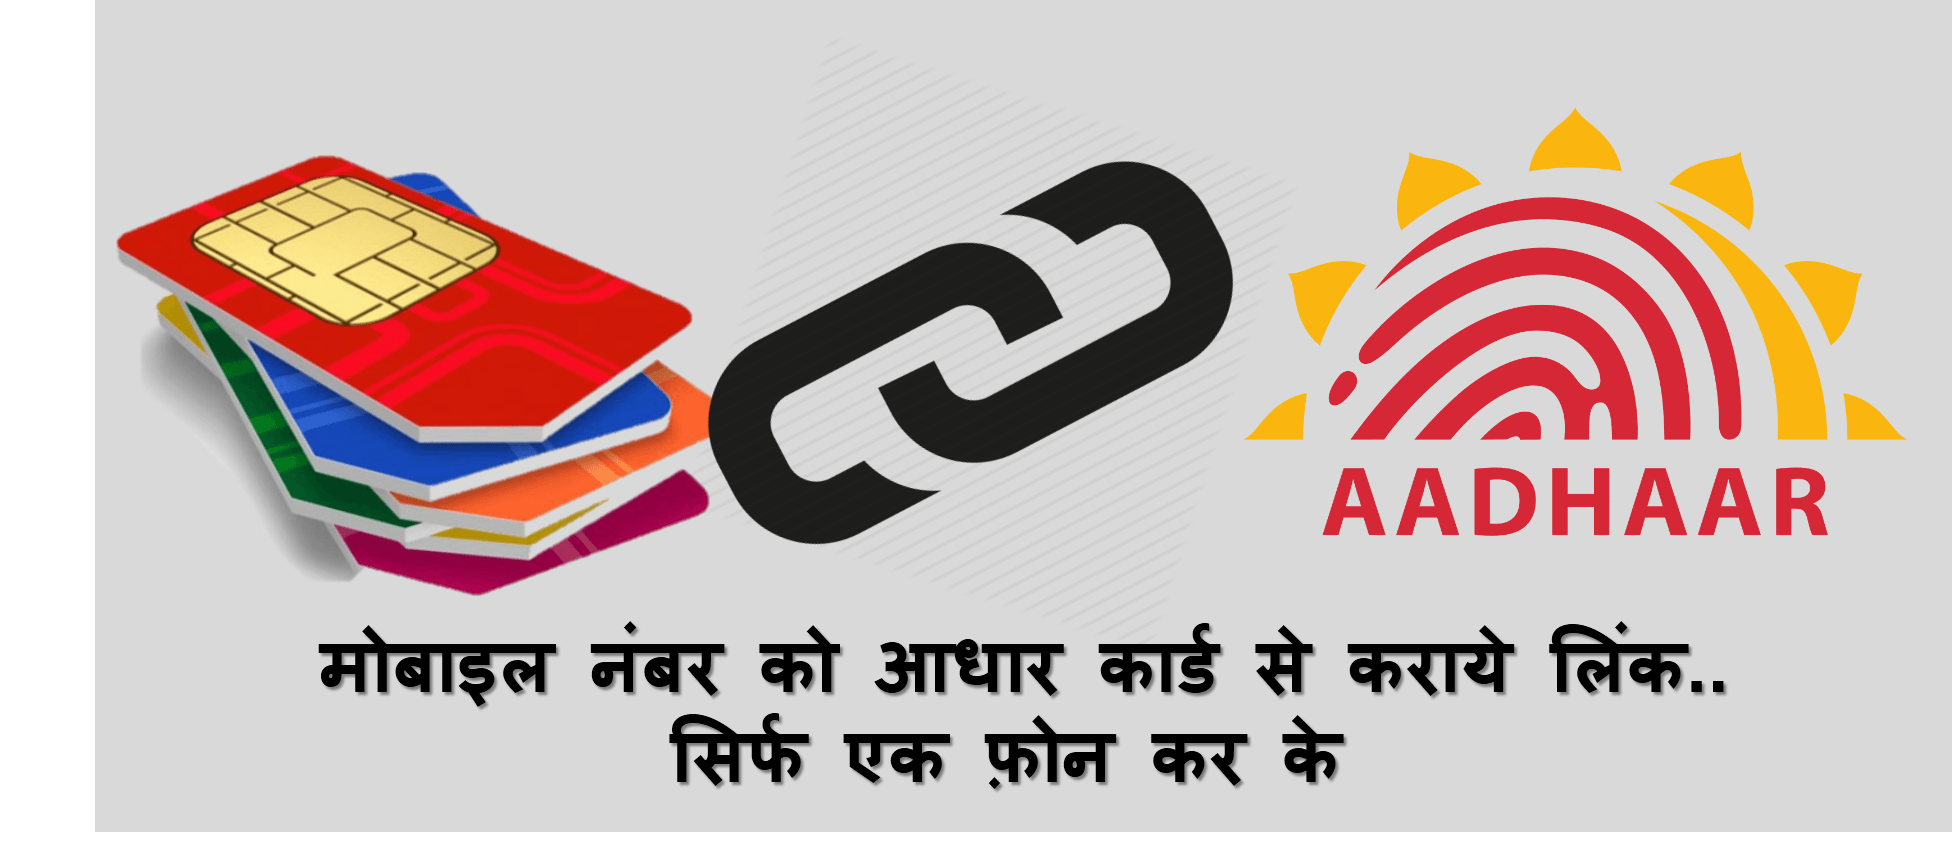 Link Aadhar number to mobile only by making a call